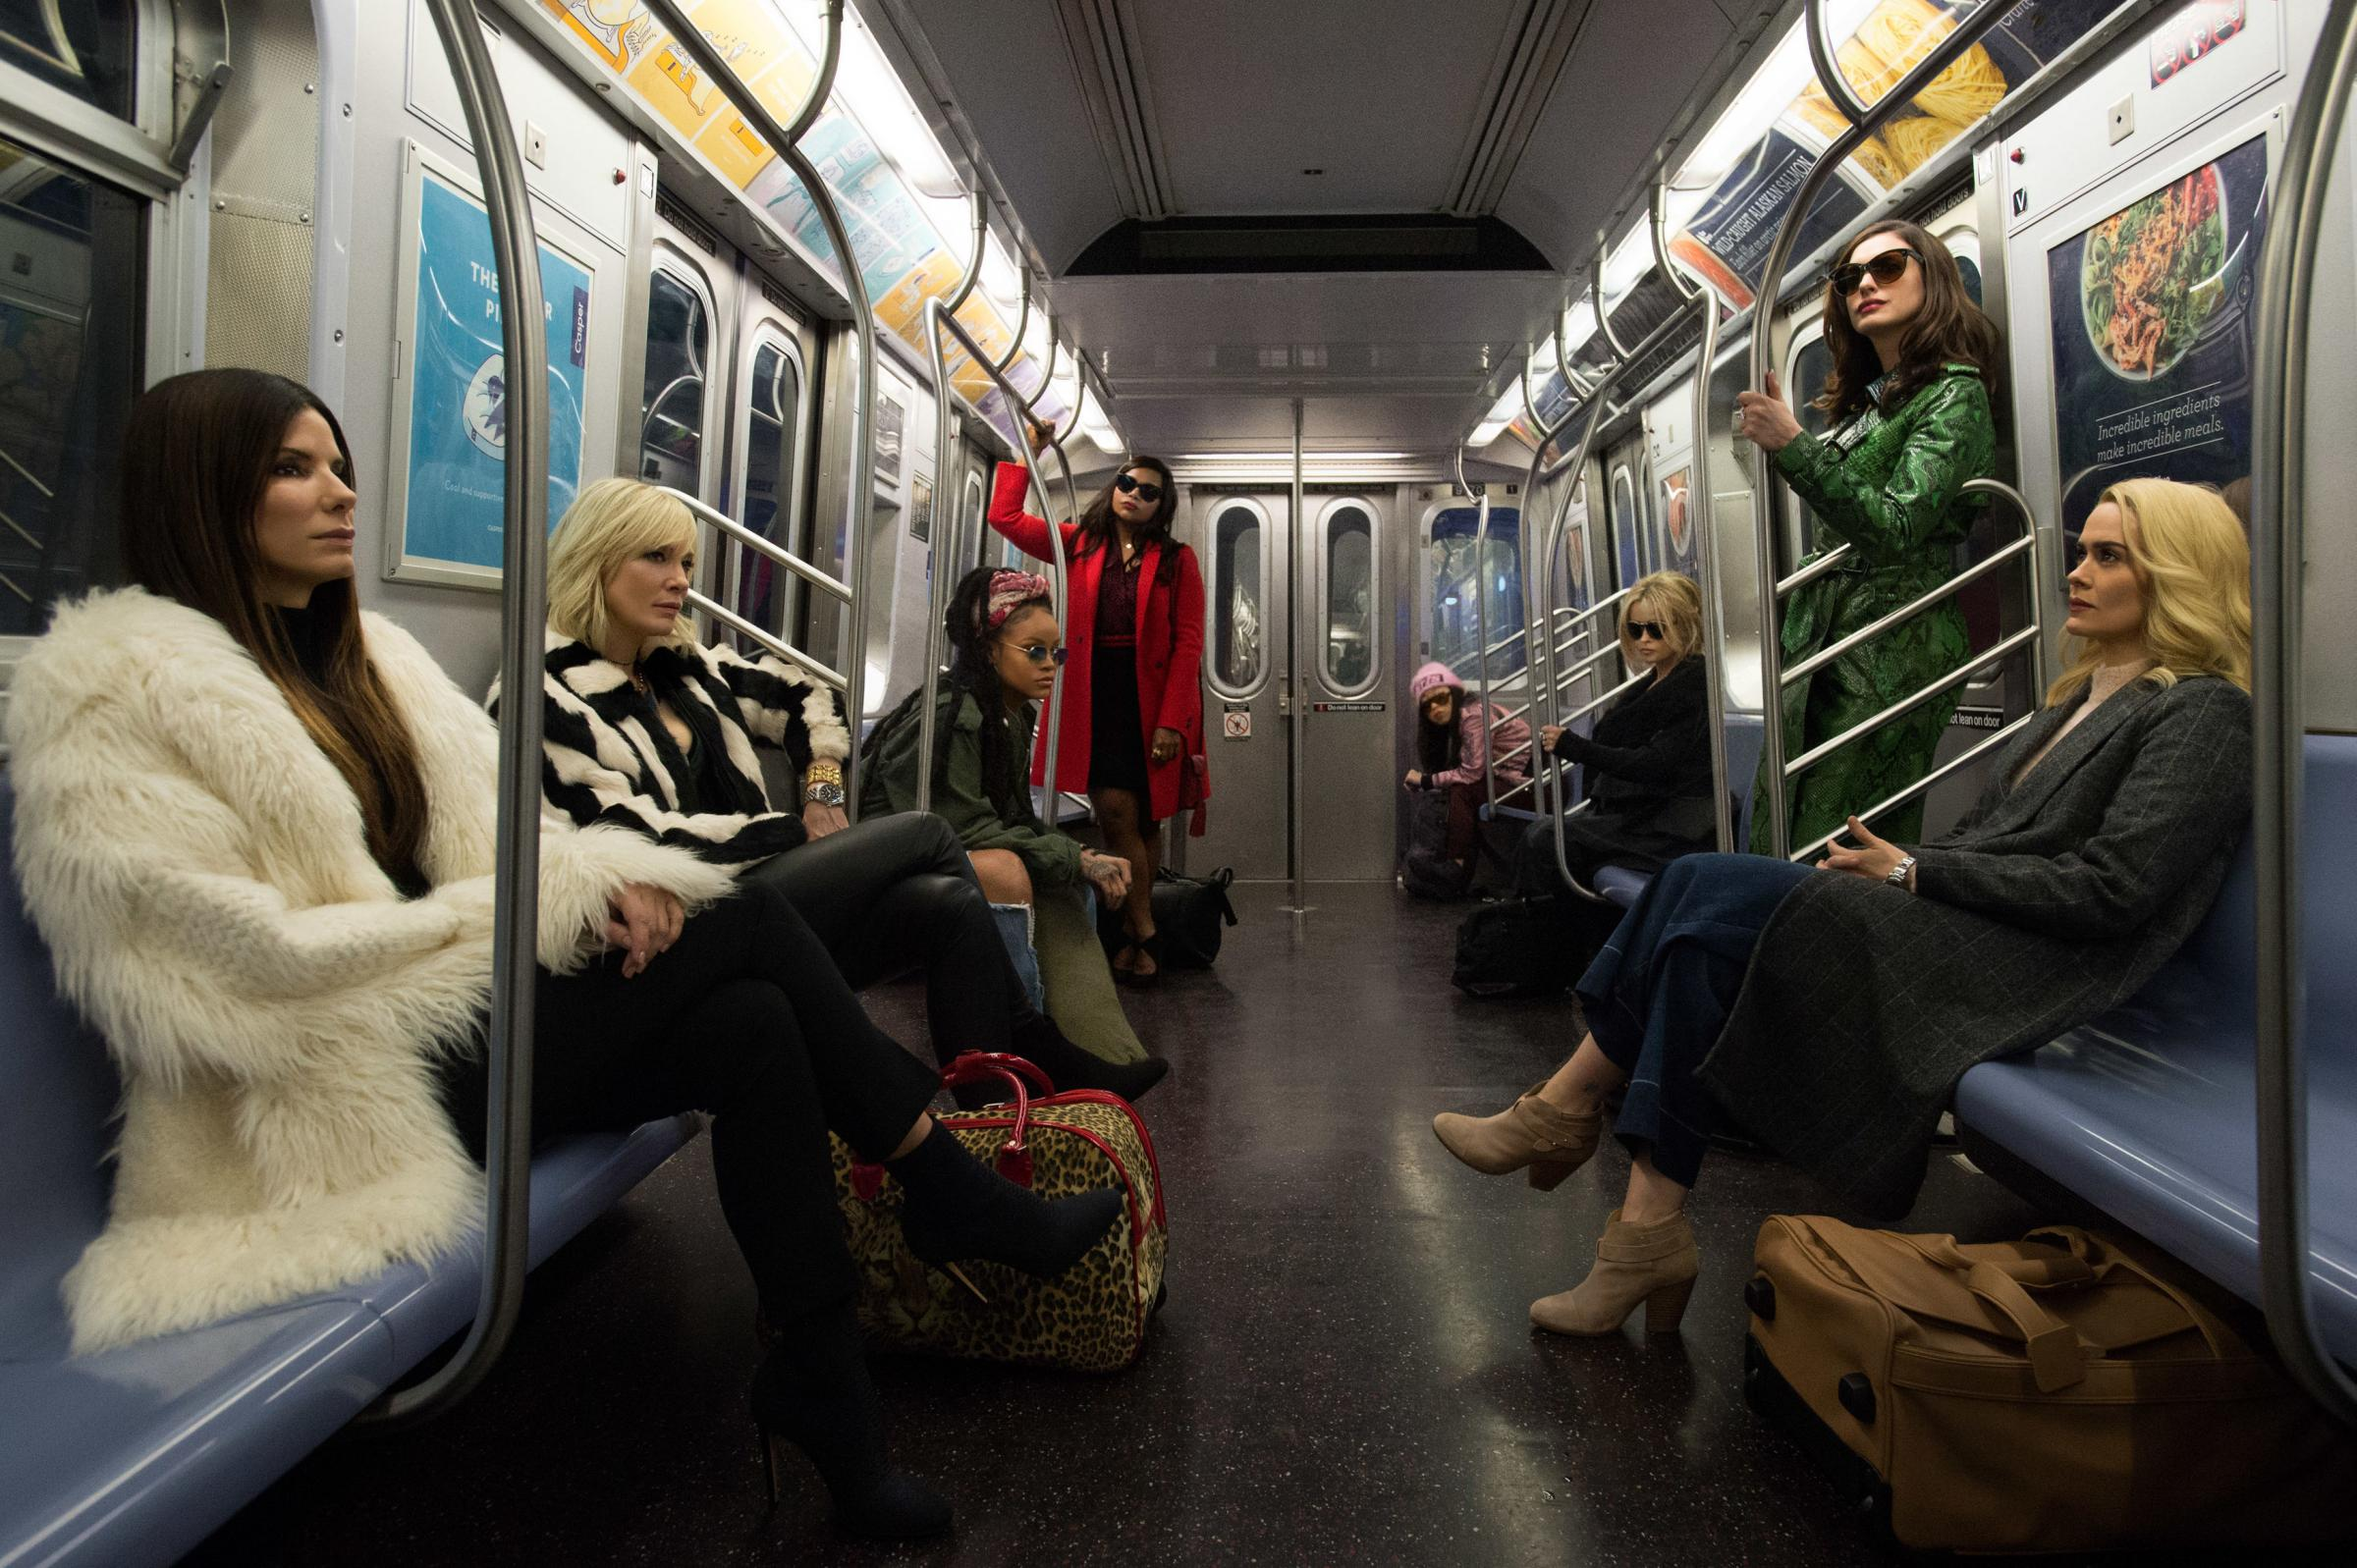 Ocean's 8. Pictured: Sandra Bullock as Debbie Ocean, Cate Blanchett as Cate, Rihanna as Nine Ball, Mindy Kaling as Amita, Awkwafina as Constance, Helena Bonham-Carter as Rose Weil, Anne Hathaway as Daphne Kluger and Sarah Paulson as Tammy